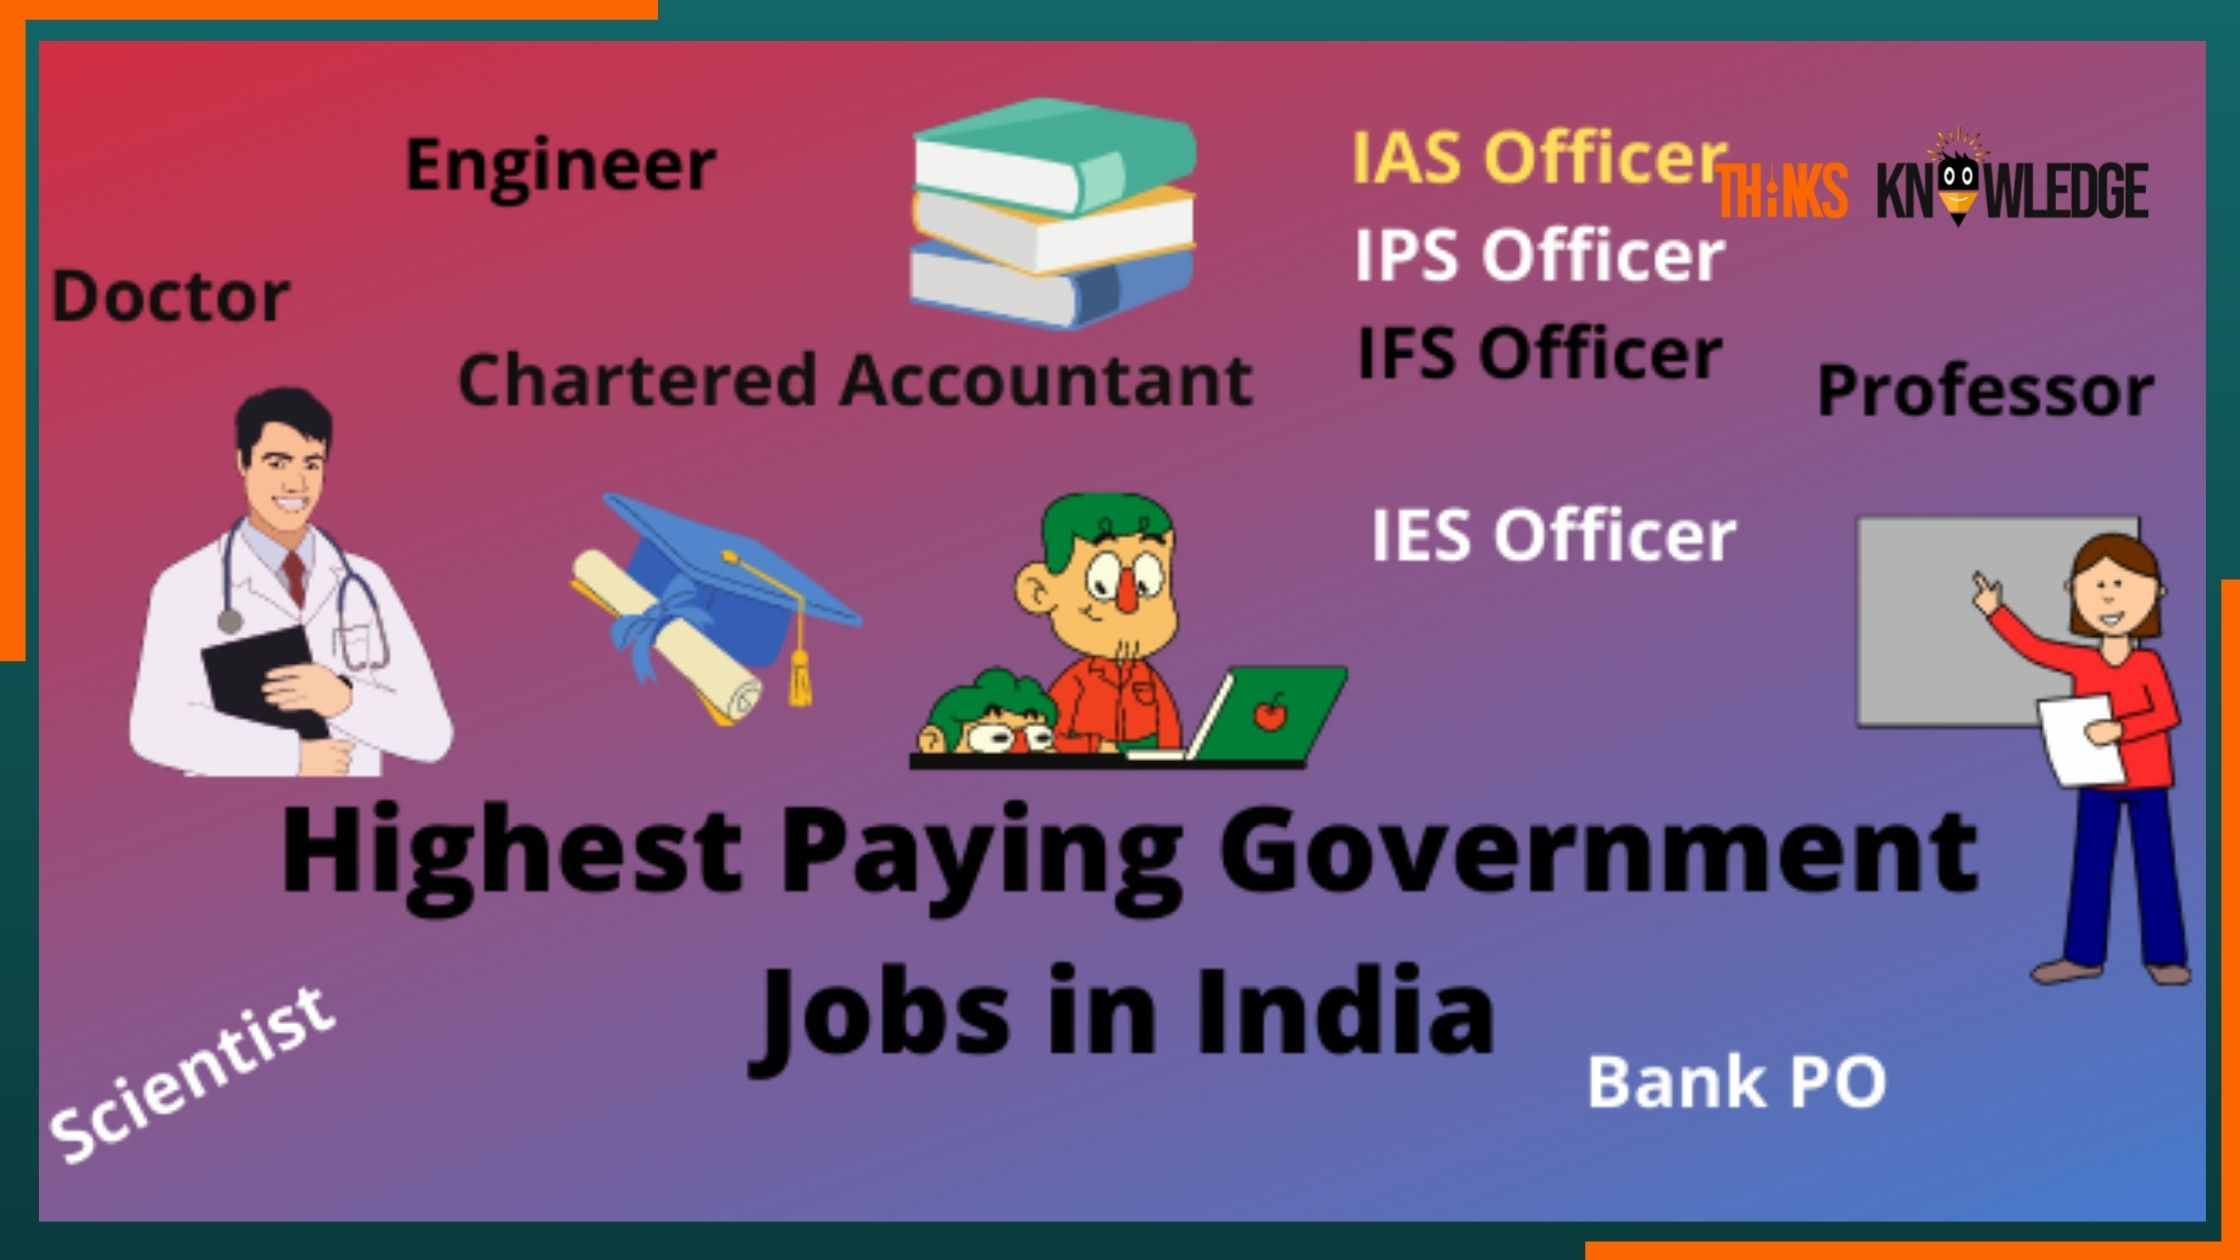 Highest Paying Government Jobs in India